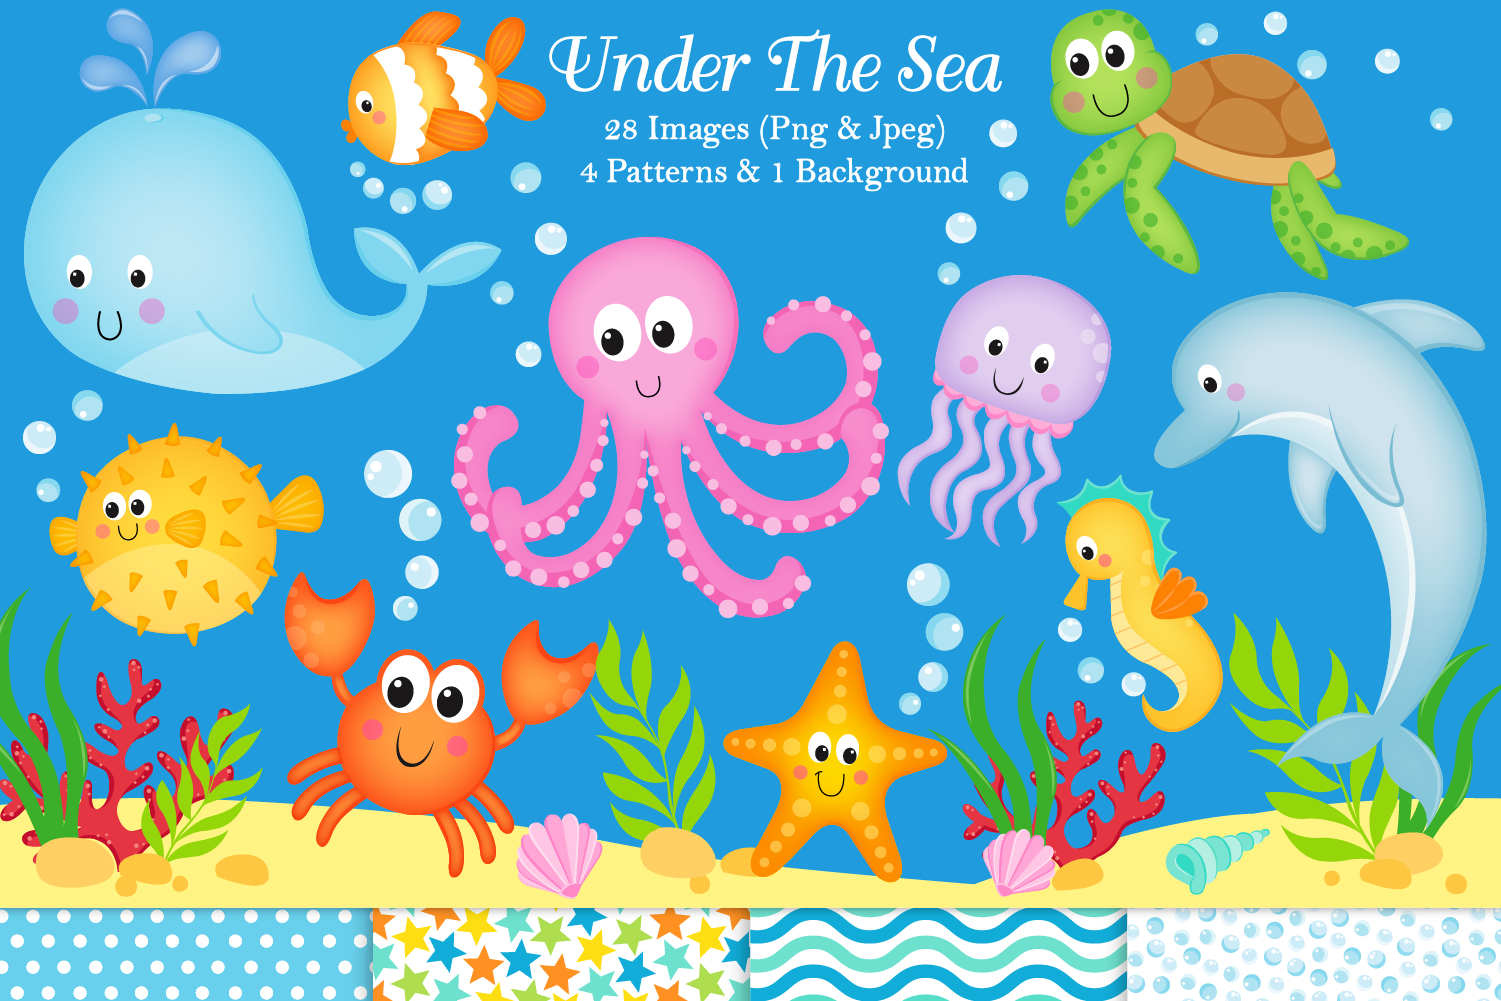 Under the sea clipart, Under the sea graphics & illustration example image 1